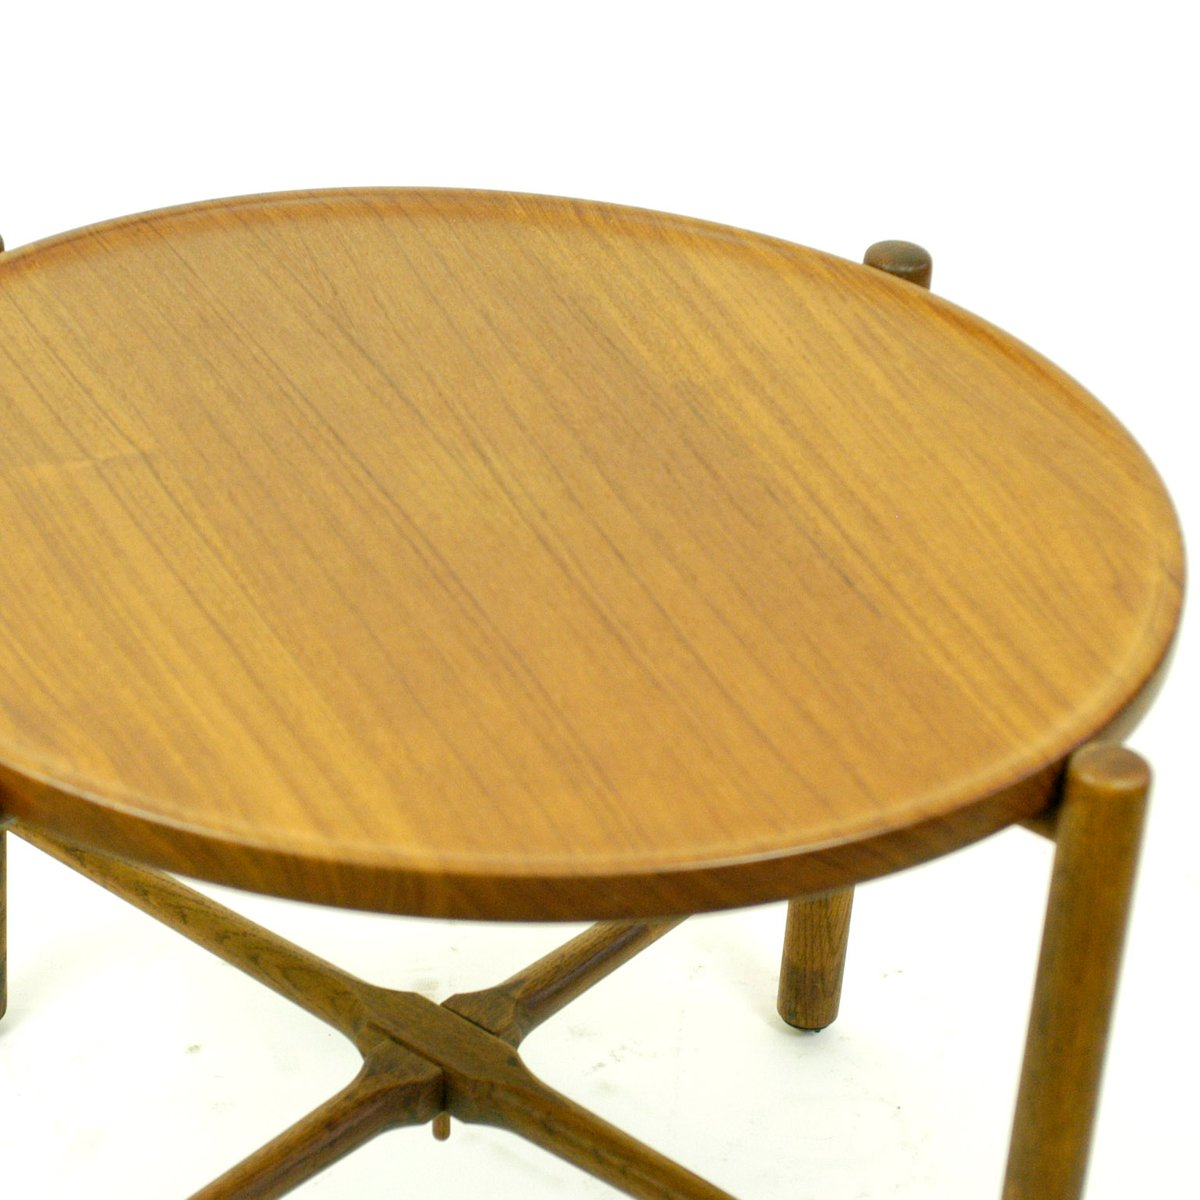 Old Teak Coffee Table: Vintage Danish Teak Coffee Table By Hans Wegner For